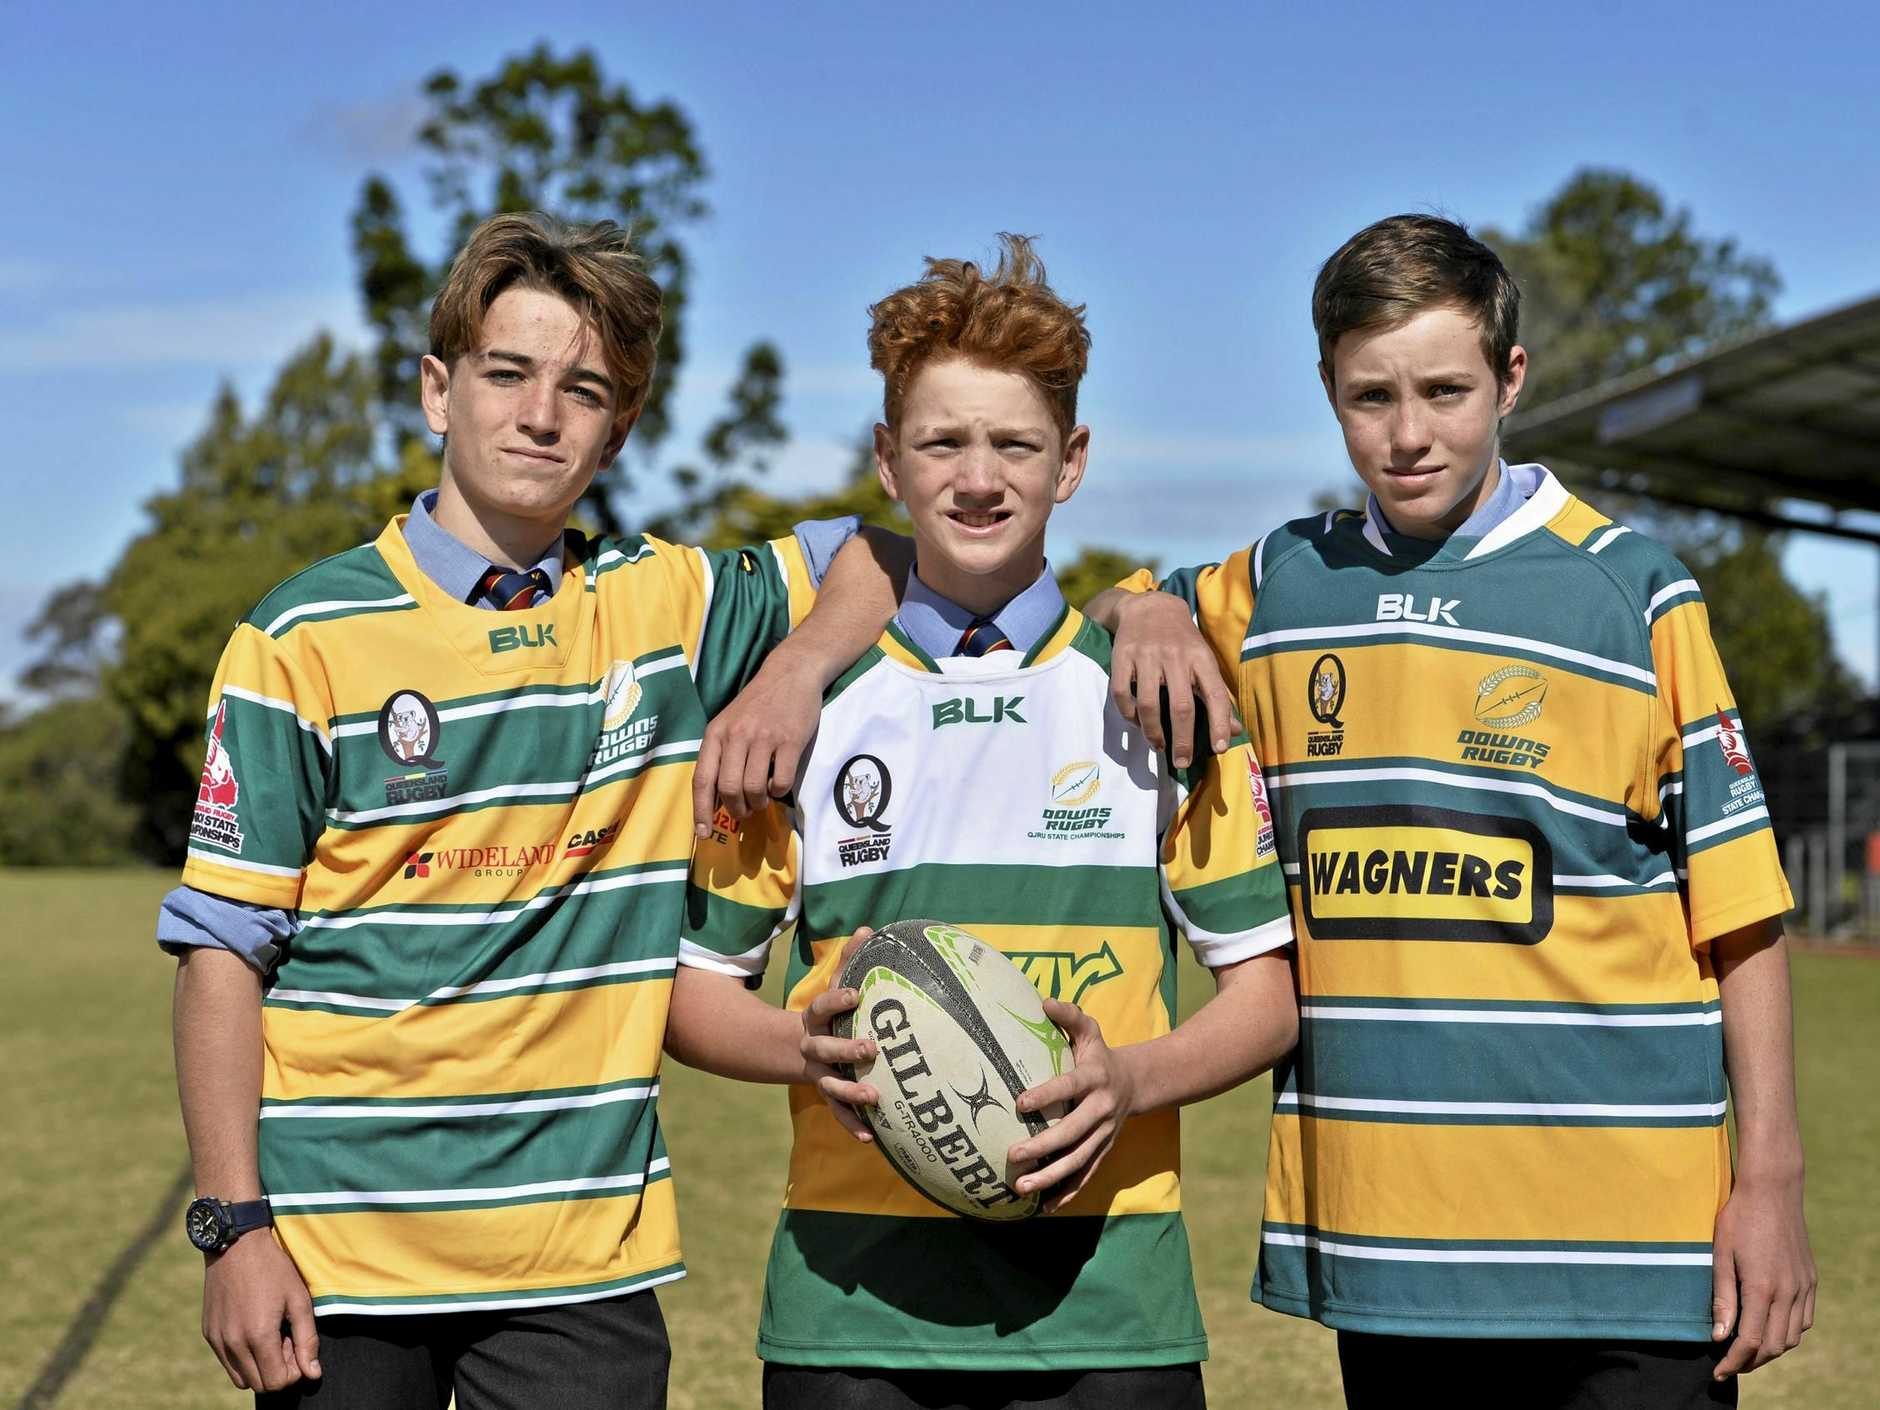 RUGBY TITLES: Young rugby stars (from left) Hamish Loughnan, Oscar Lane and Max North are looking forward to the upcoming Teenage Boys State Championships. Downlands College will host the event from July 5-7 with more than 800 players signed on for the competition.